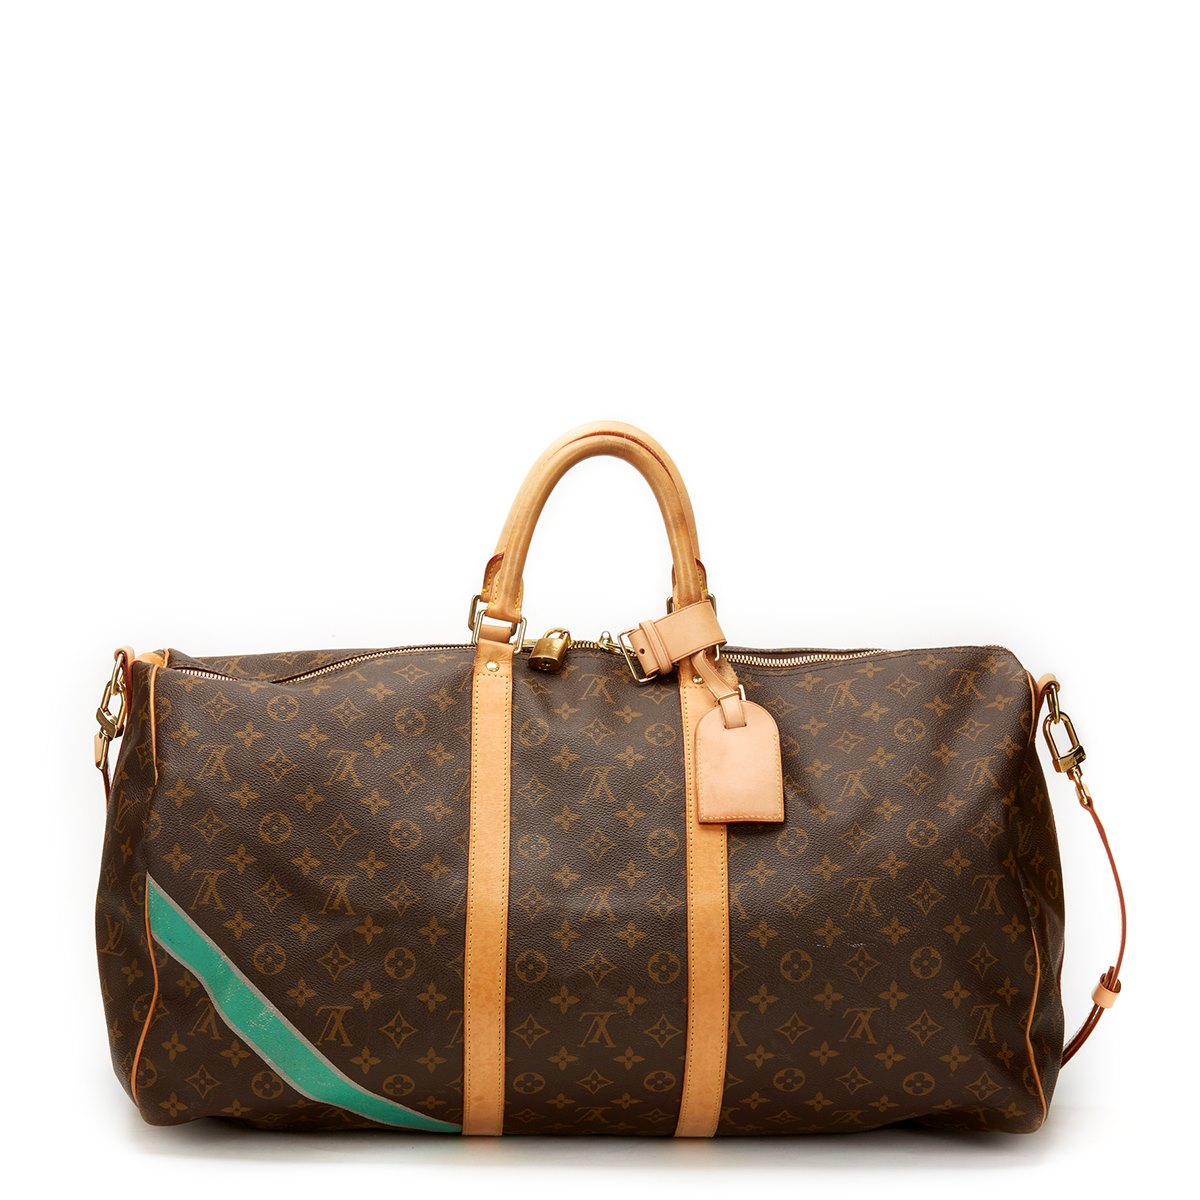 louis vuitton keepall bandouliere 55 2010 cb066 second hand handbags. Black Bedroom Furniture Sets. Home Design Ideas